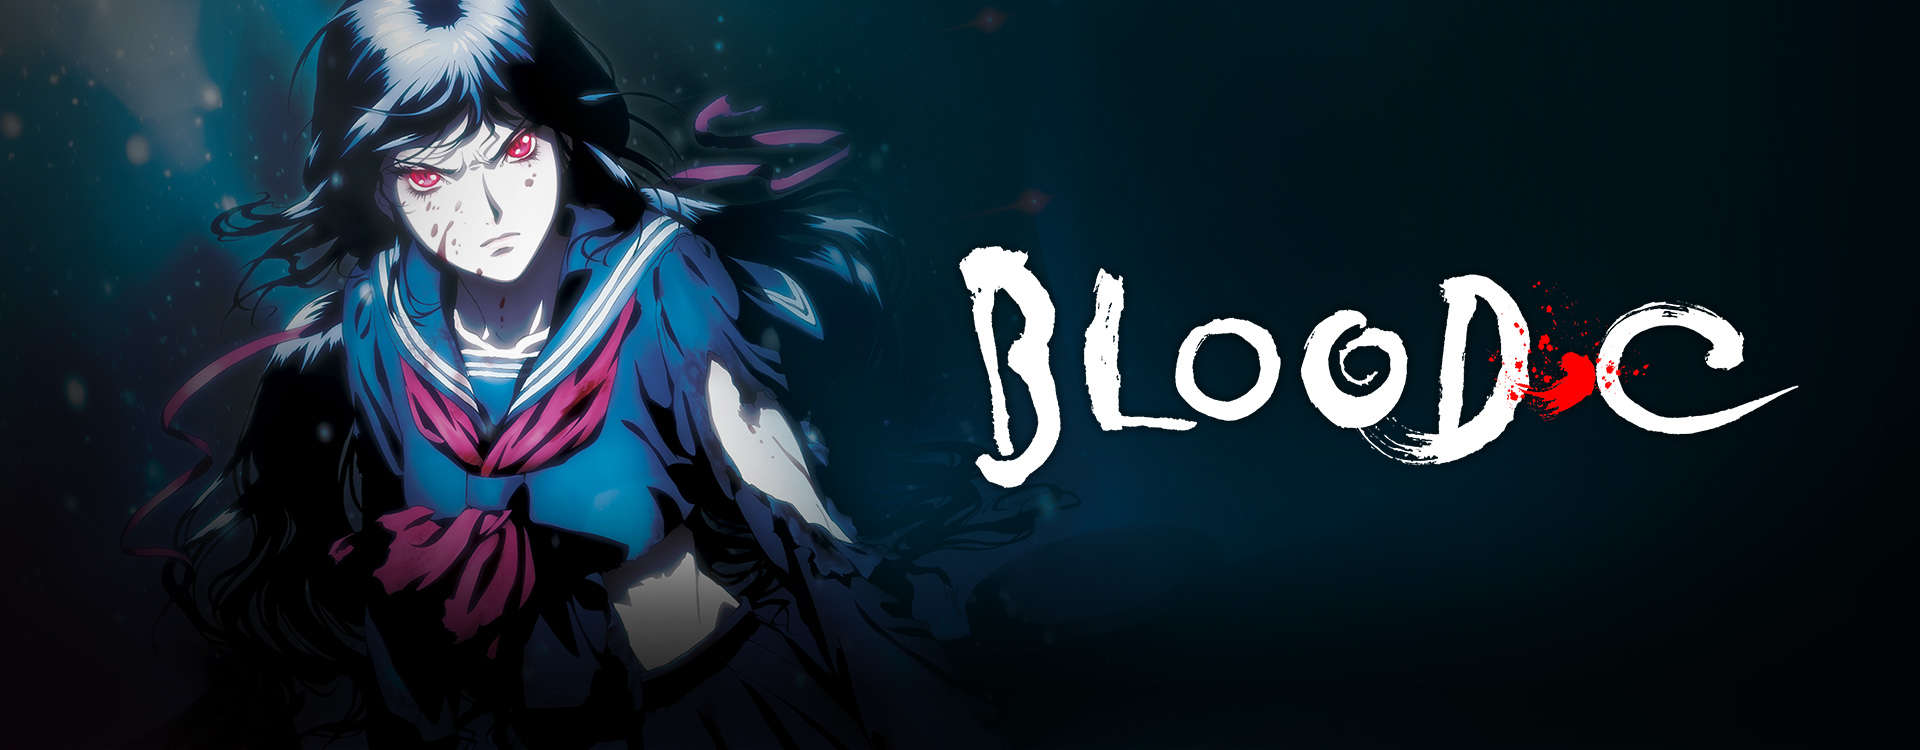 stream & watch blood-c episodes online - sub & dub